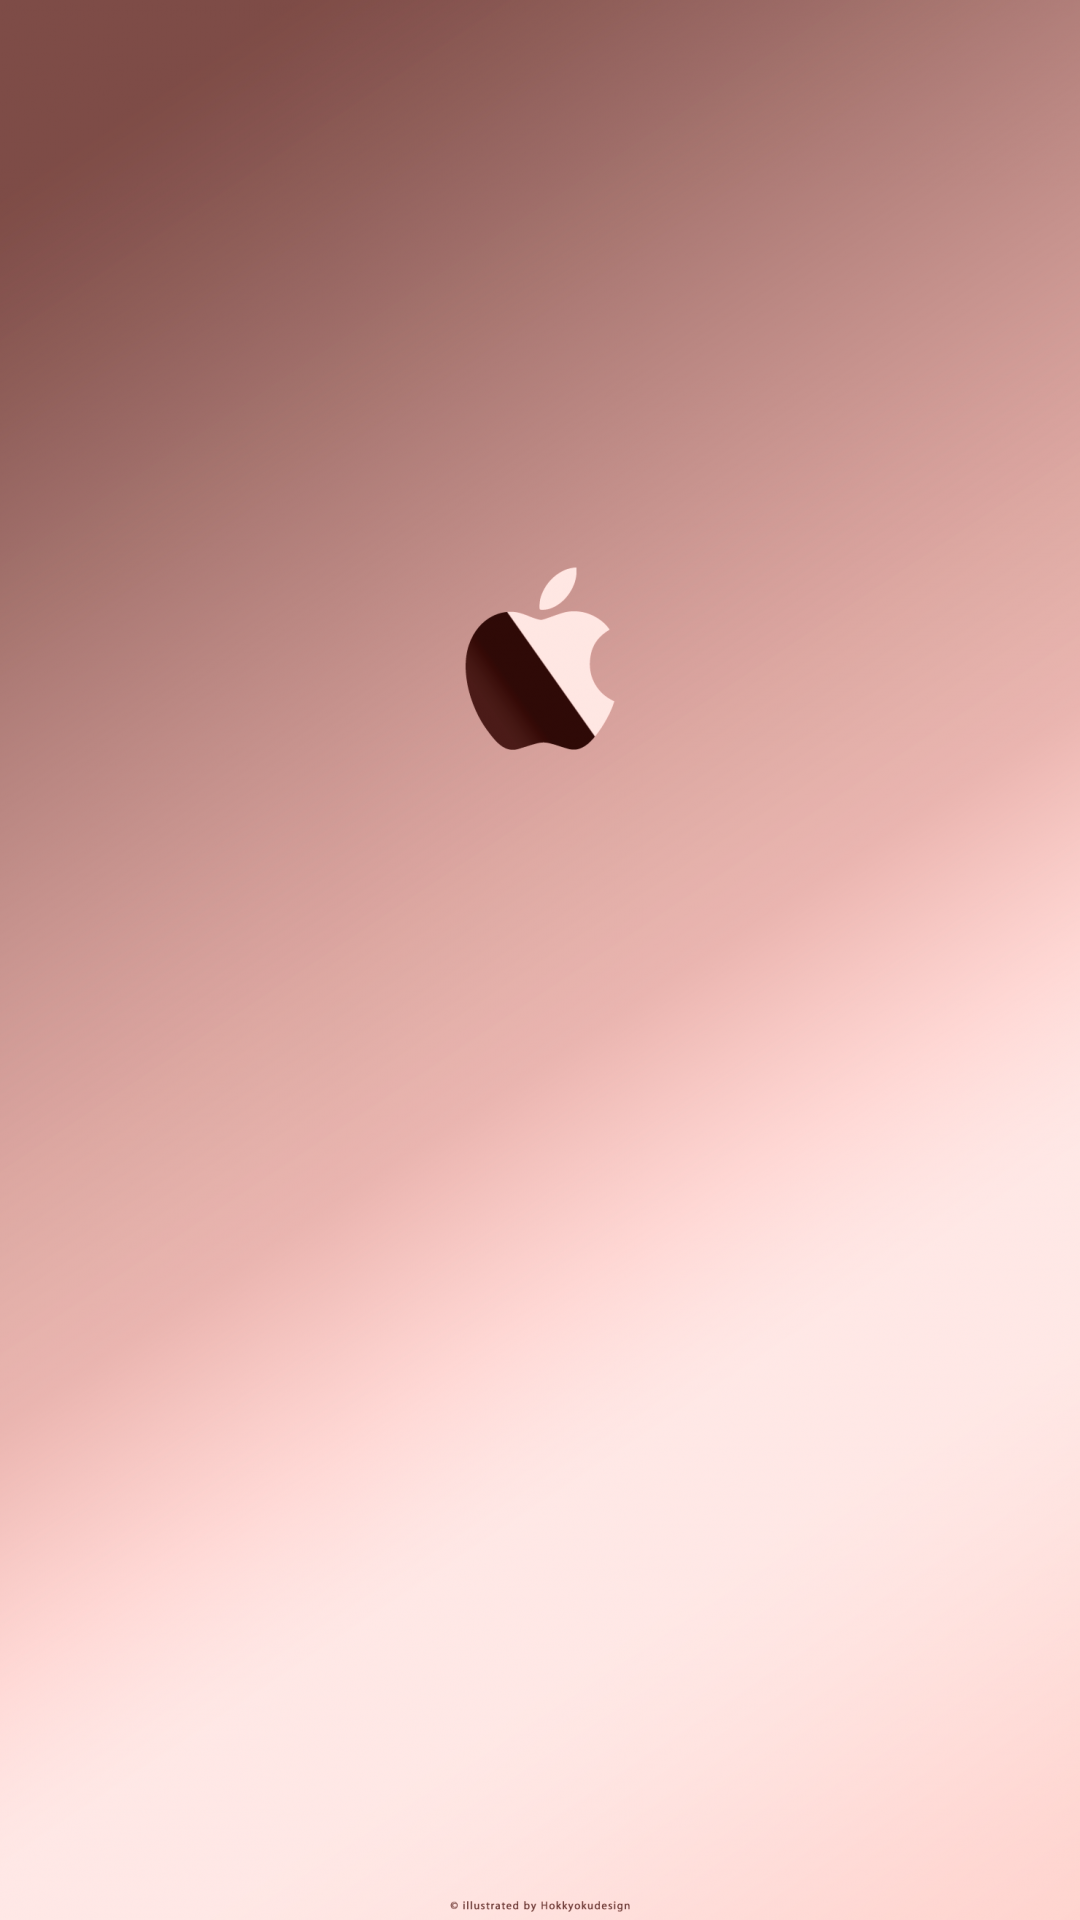 Free Download Iphoneipadrose Gold With Apple3 Rose Gold Wallpaper